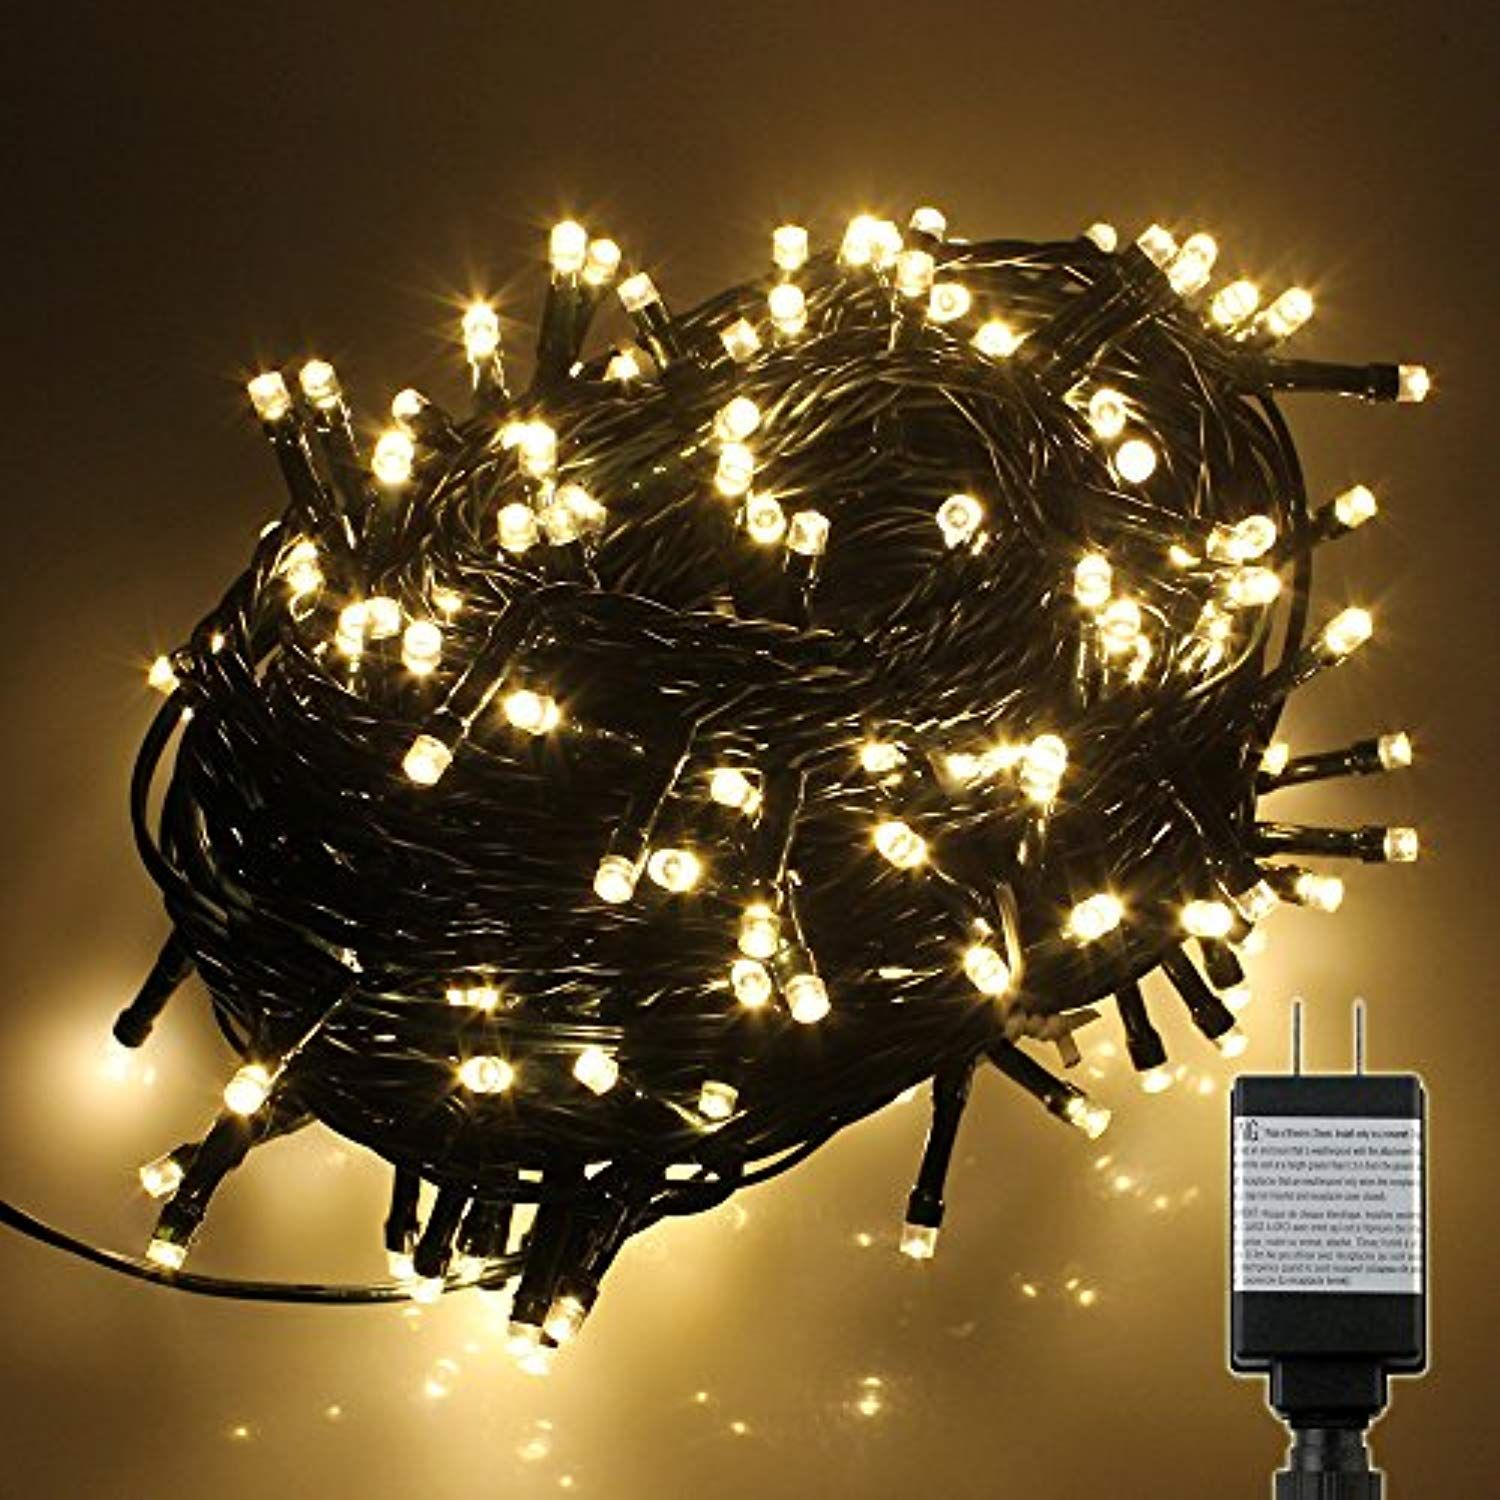 100 SAFE LOW VOLTAGE LED FAIRY LIGHTS WHITE OR COLOURED CHRISTMAS TREE WEDDING